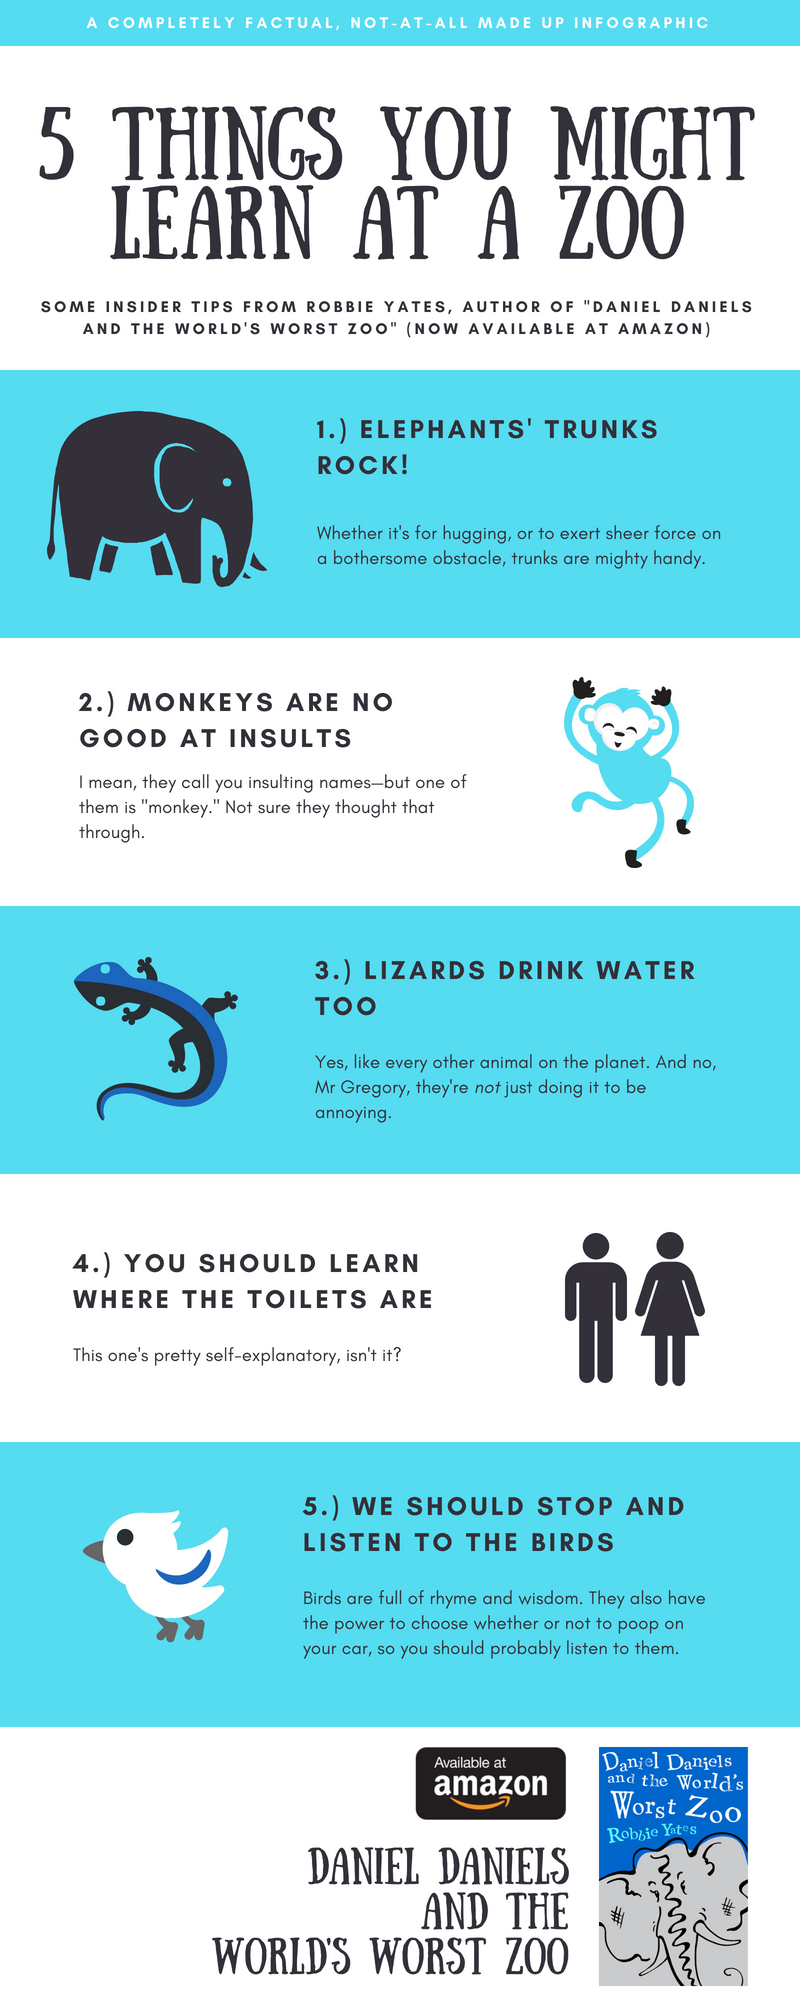 5 Things You Might Learn at a Zoo